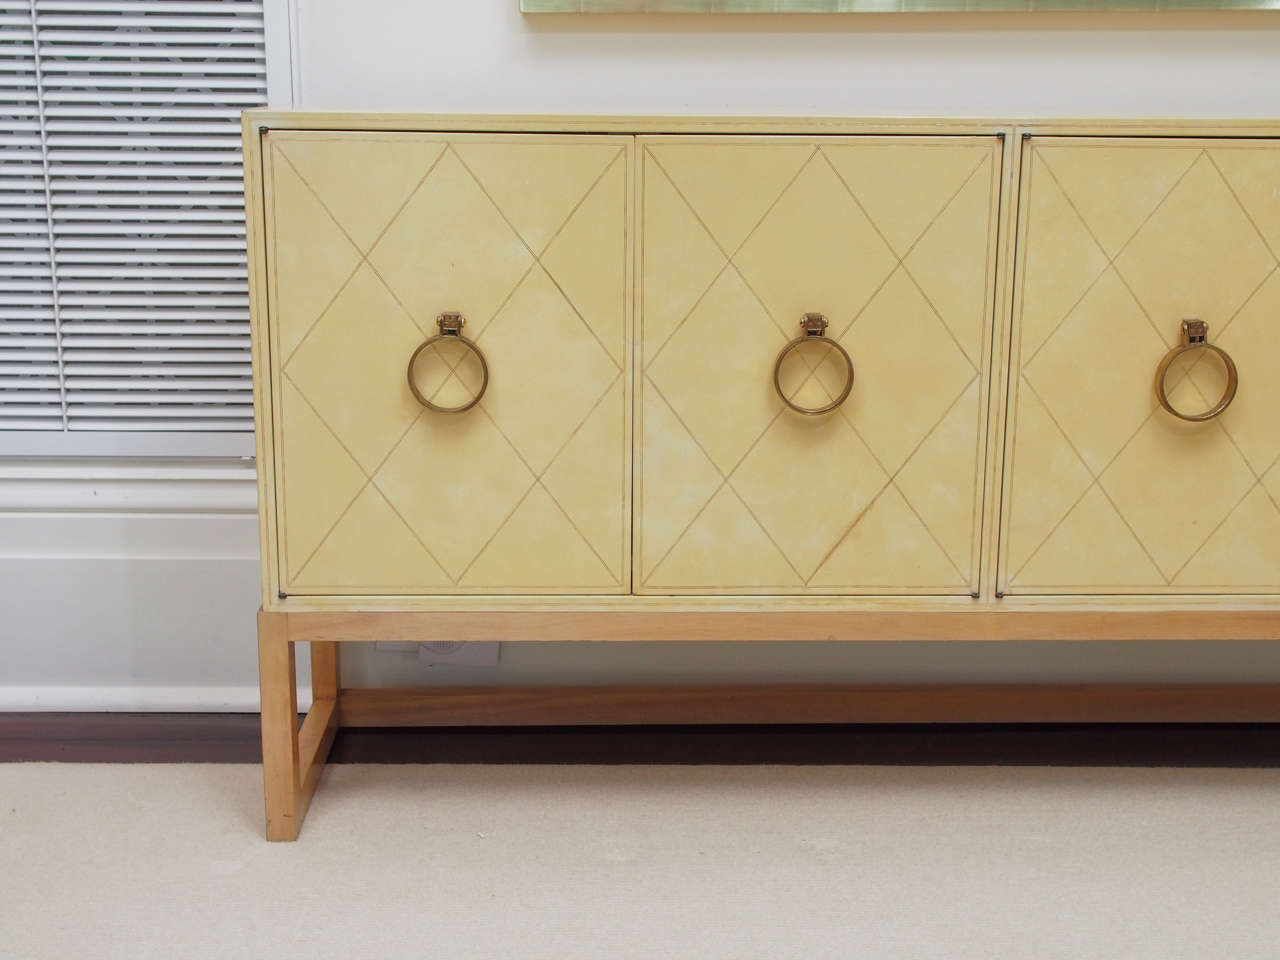 NEW PRICE SALE Exceptional Four-Door Credenza by Tommi Parzinger, circa 1940s 3